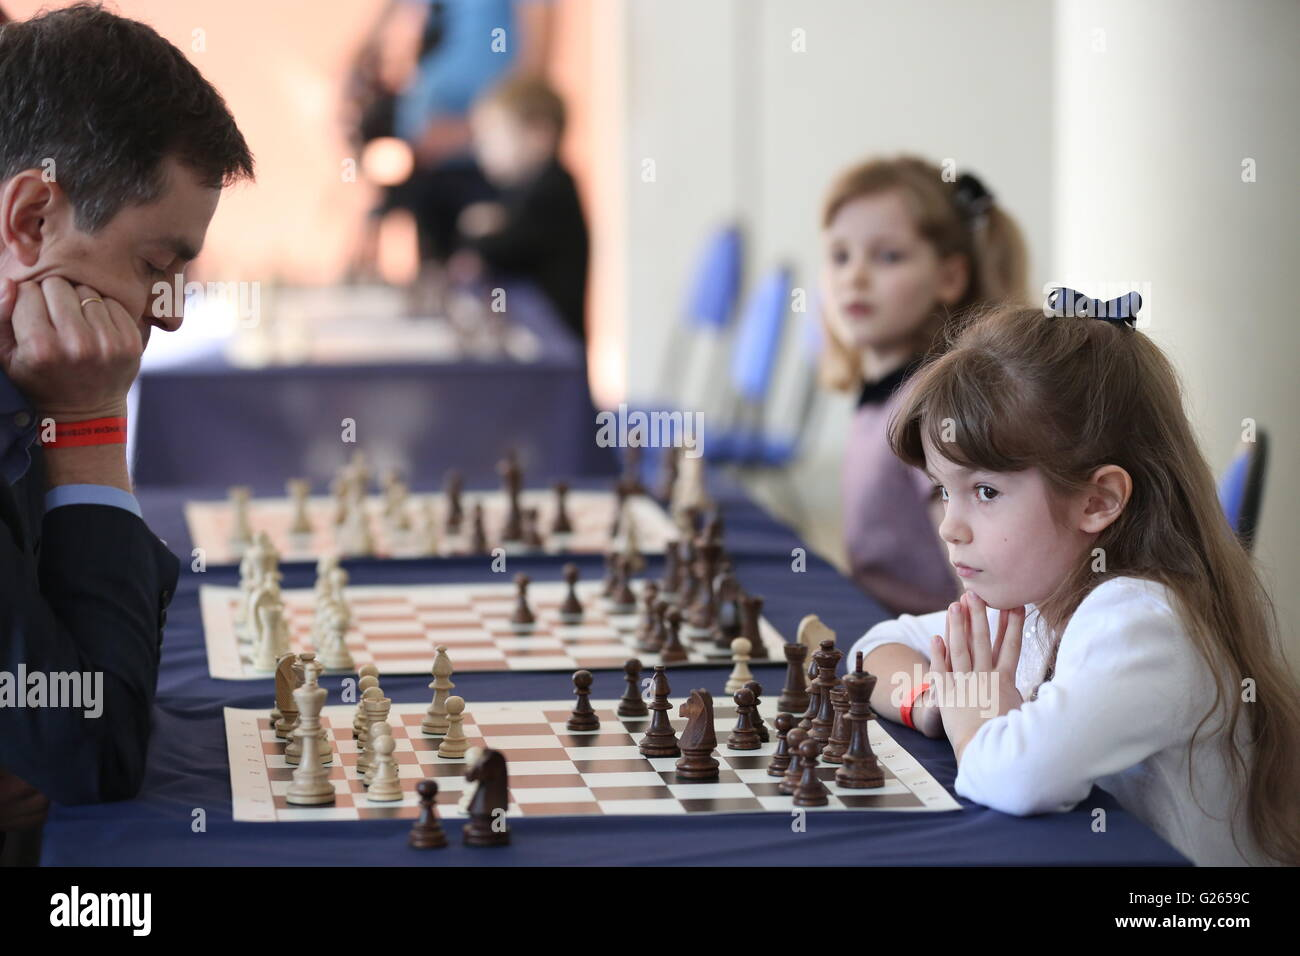 MOSCOW, RUSSIA – MAY 24, 2016: Children look at chessboards during a master class organised by Mikhail Botvinnik - Stock Image